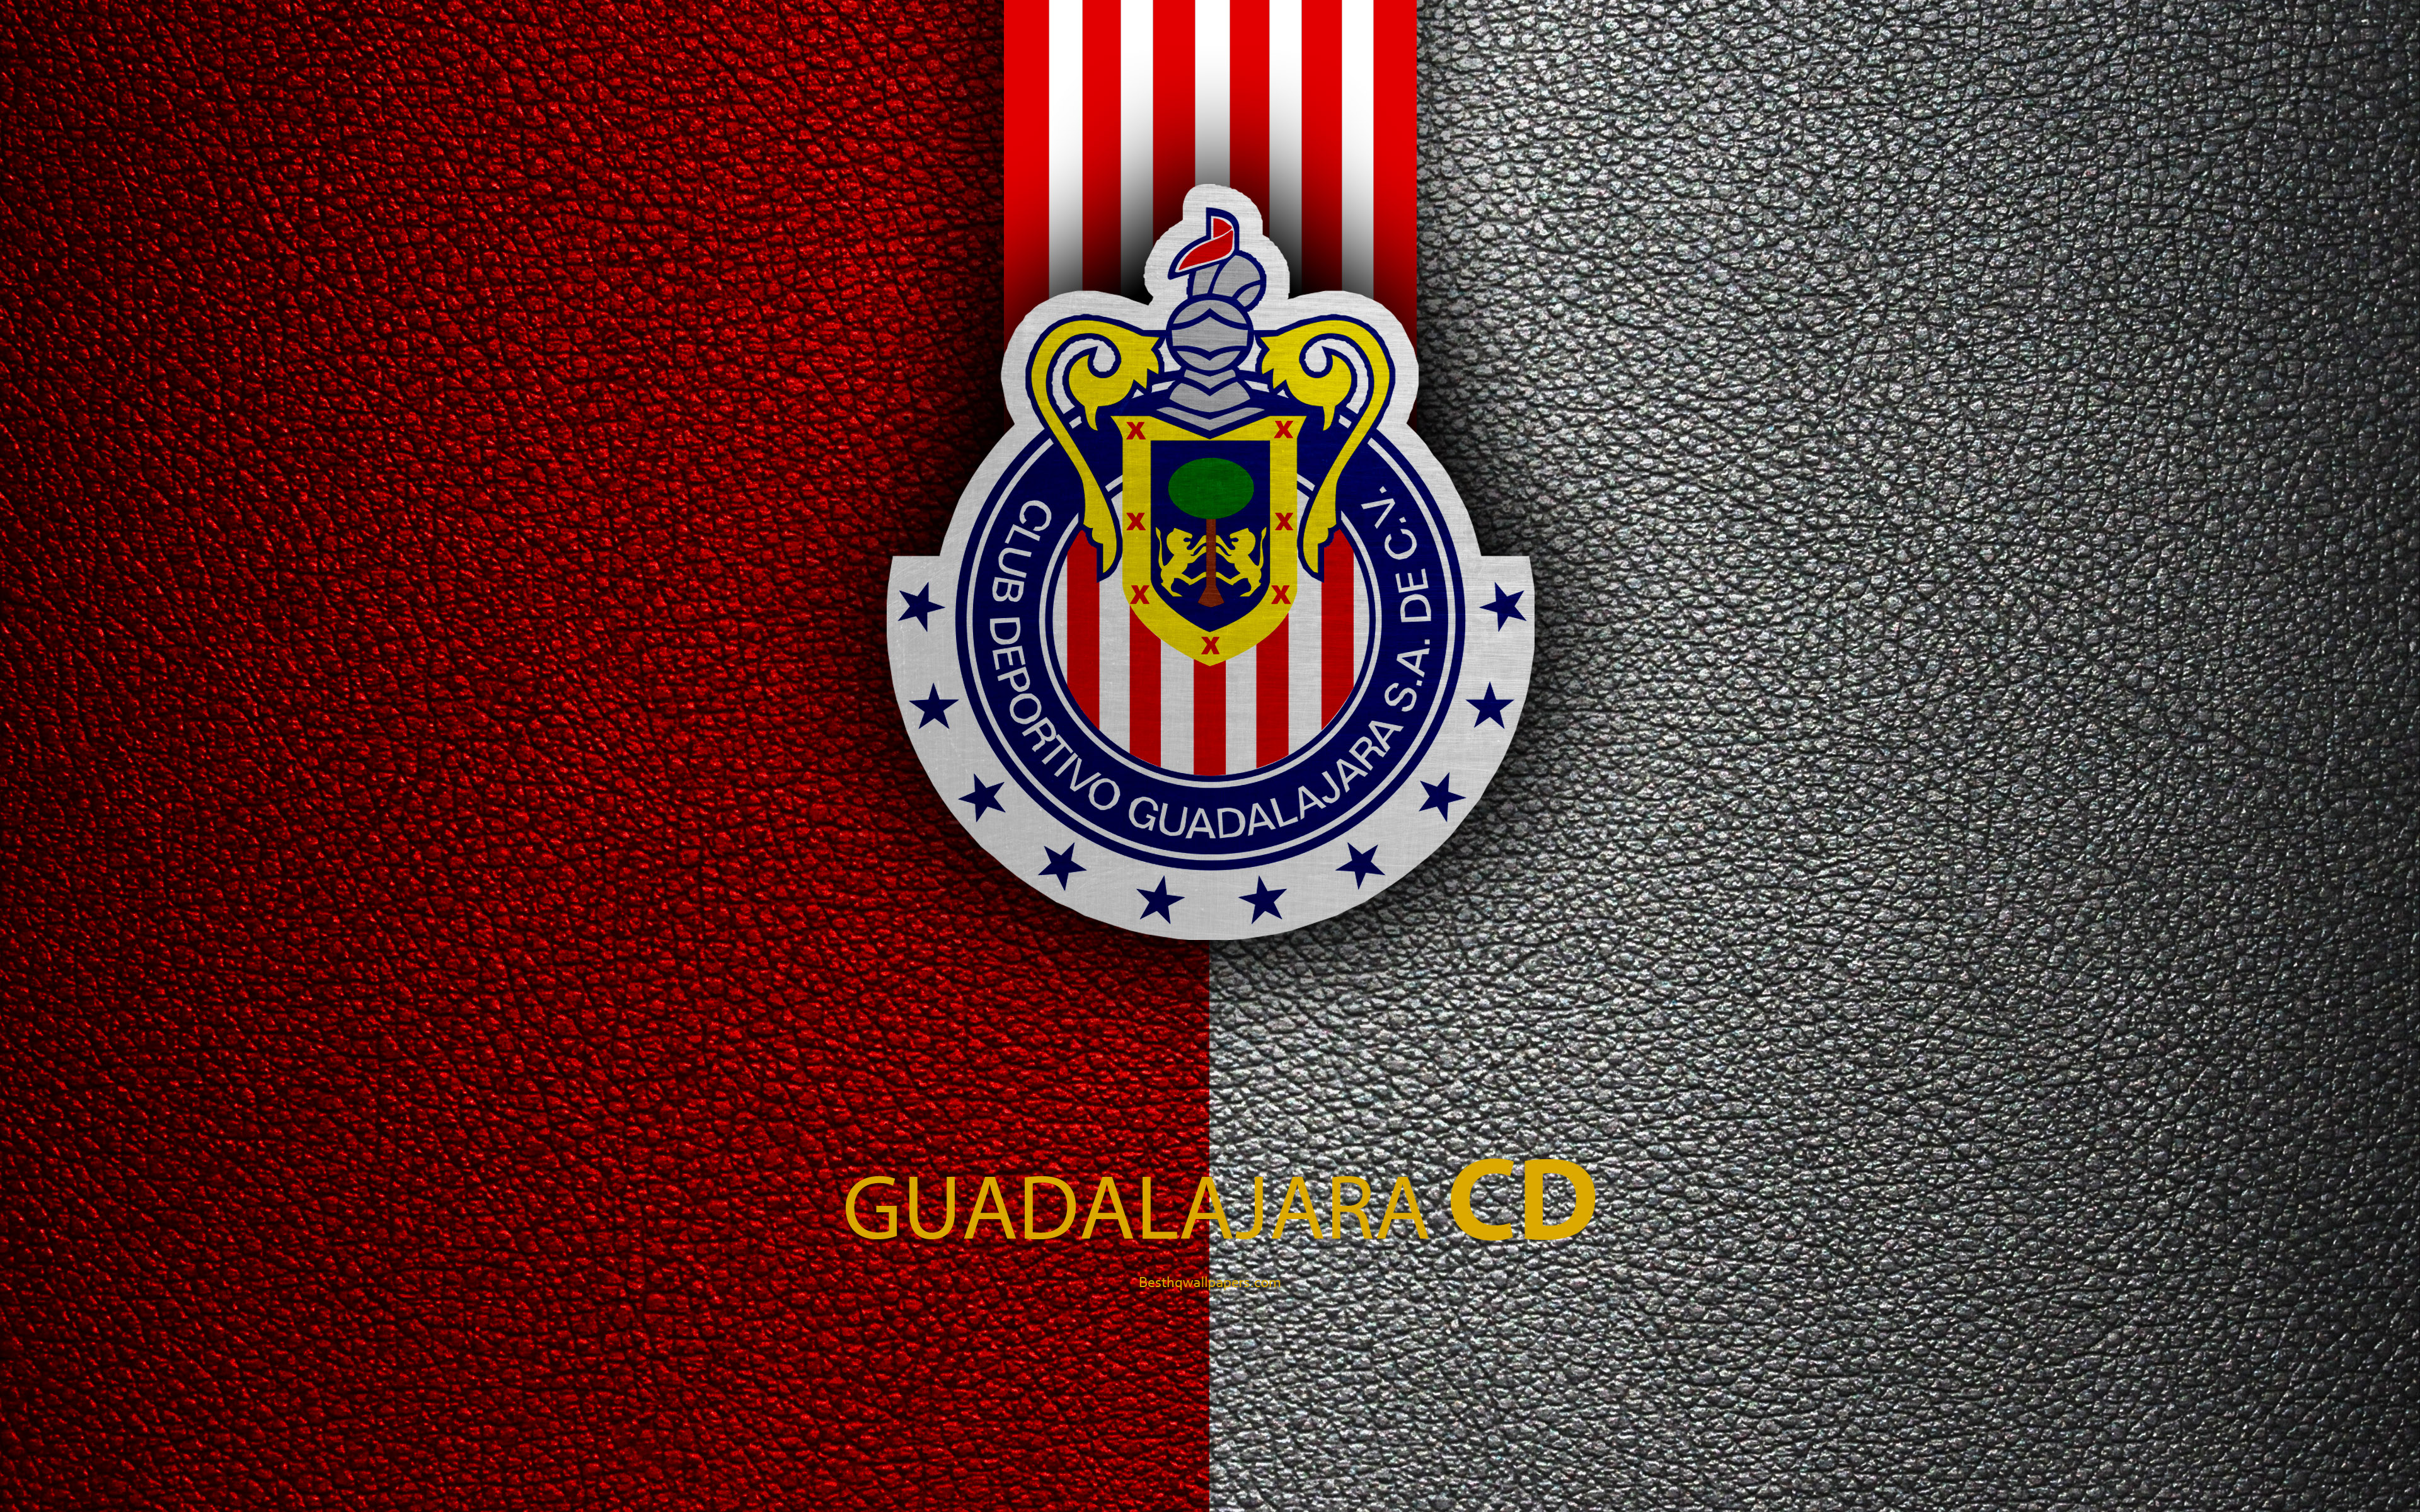 Download wallpapers CD Guadalajara Chivas 4k leather texture 3840x2400